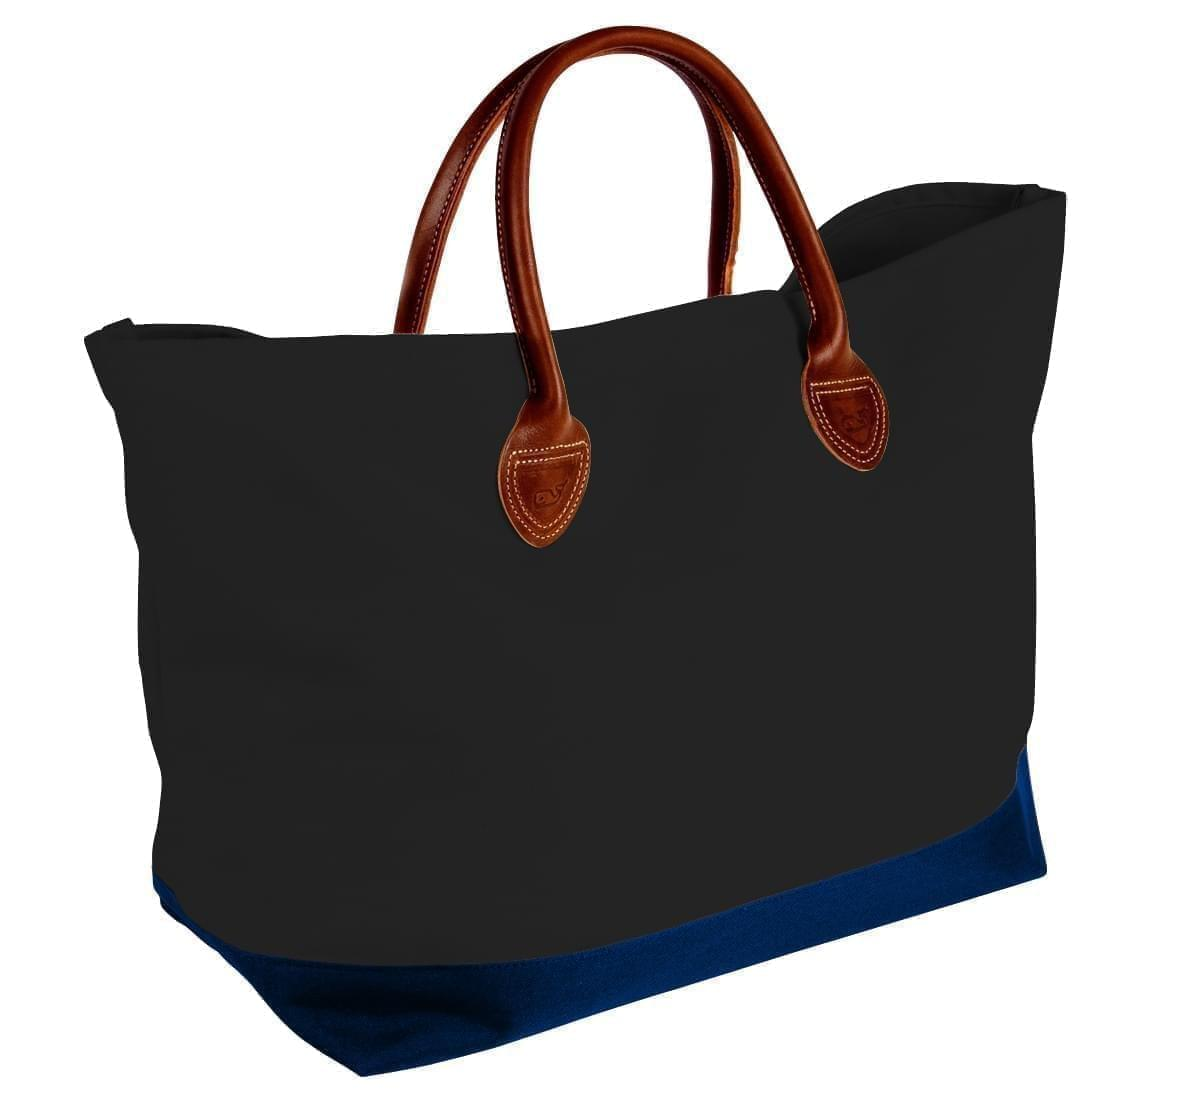 USA Made Canvas Leather Handle Totes, Black-Navy, 10899-IH9